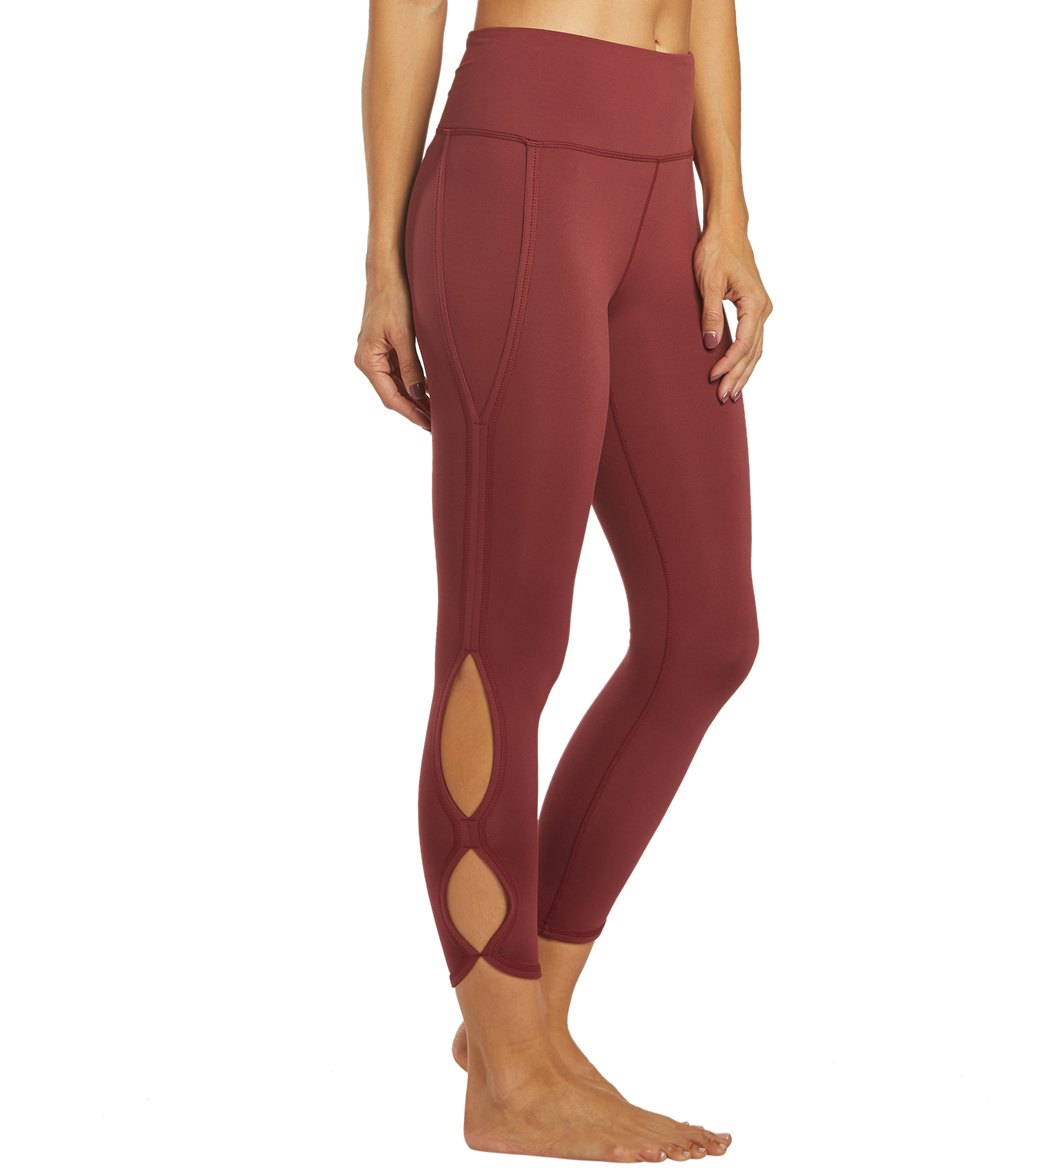 Free People Movement High Rise Infinity Yoga Leggings - Wine Spandex